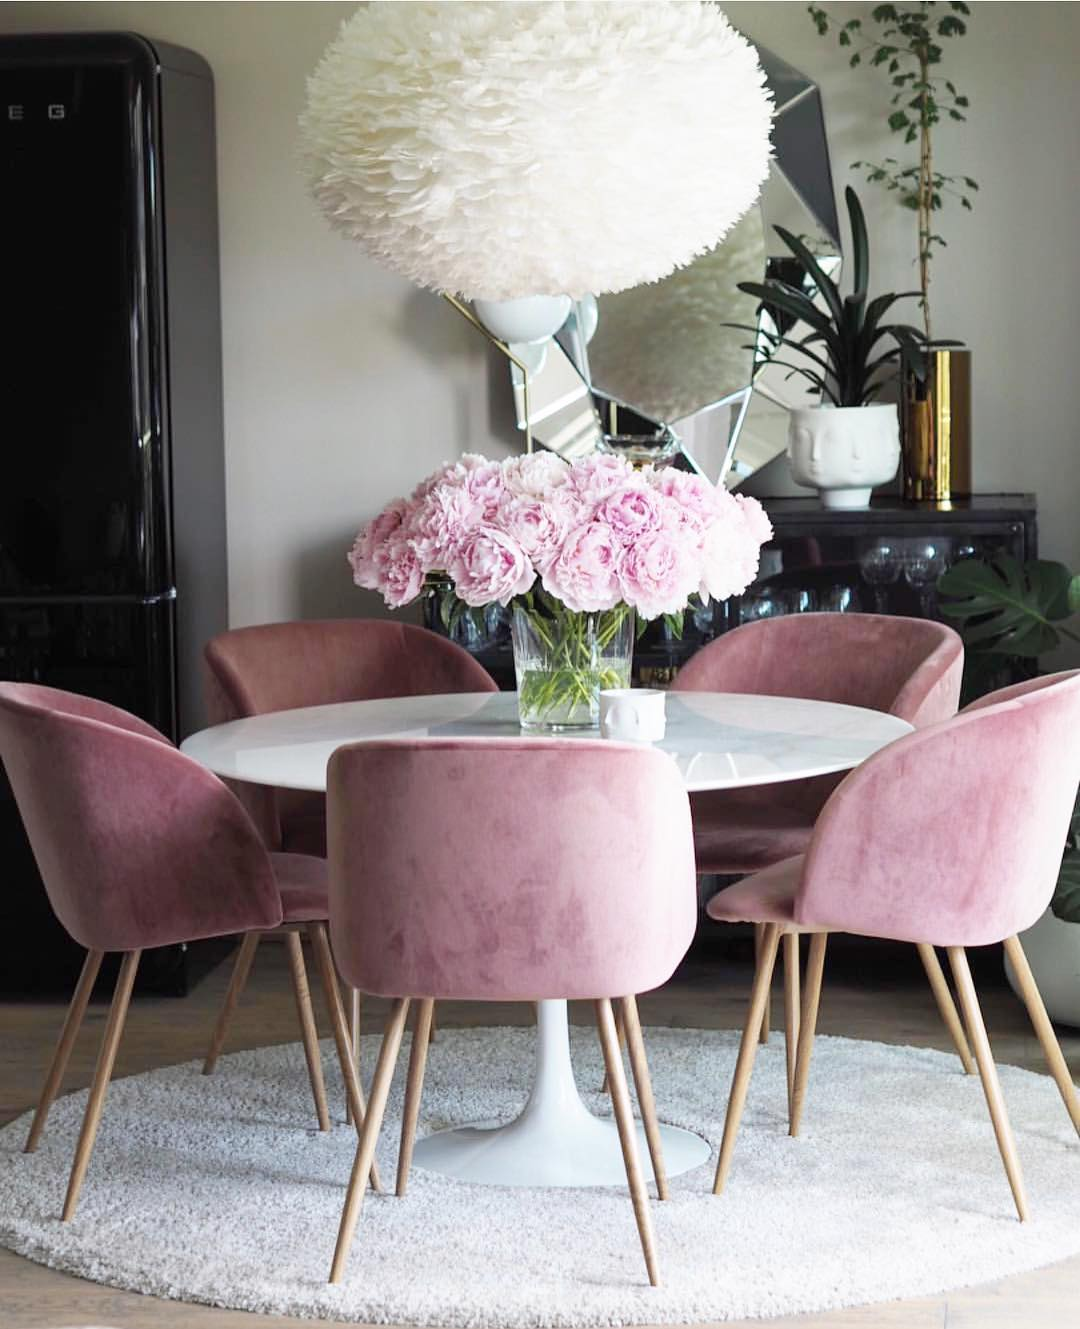 Velvet dining chairs and white tulip table @nyahemmet